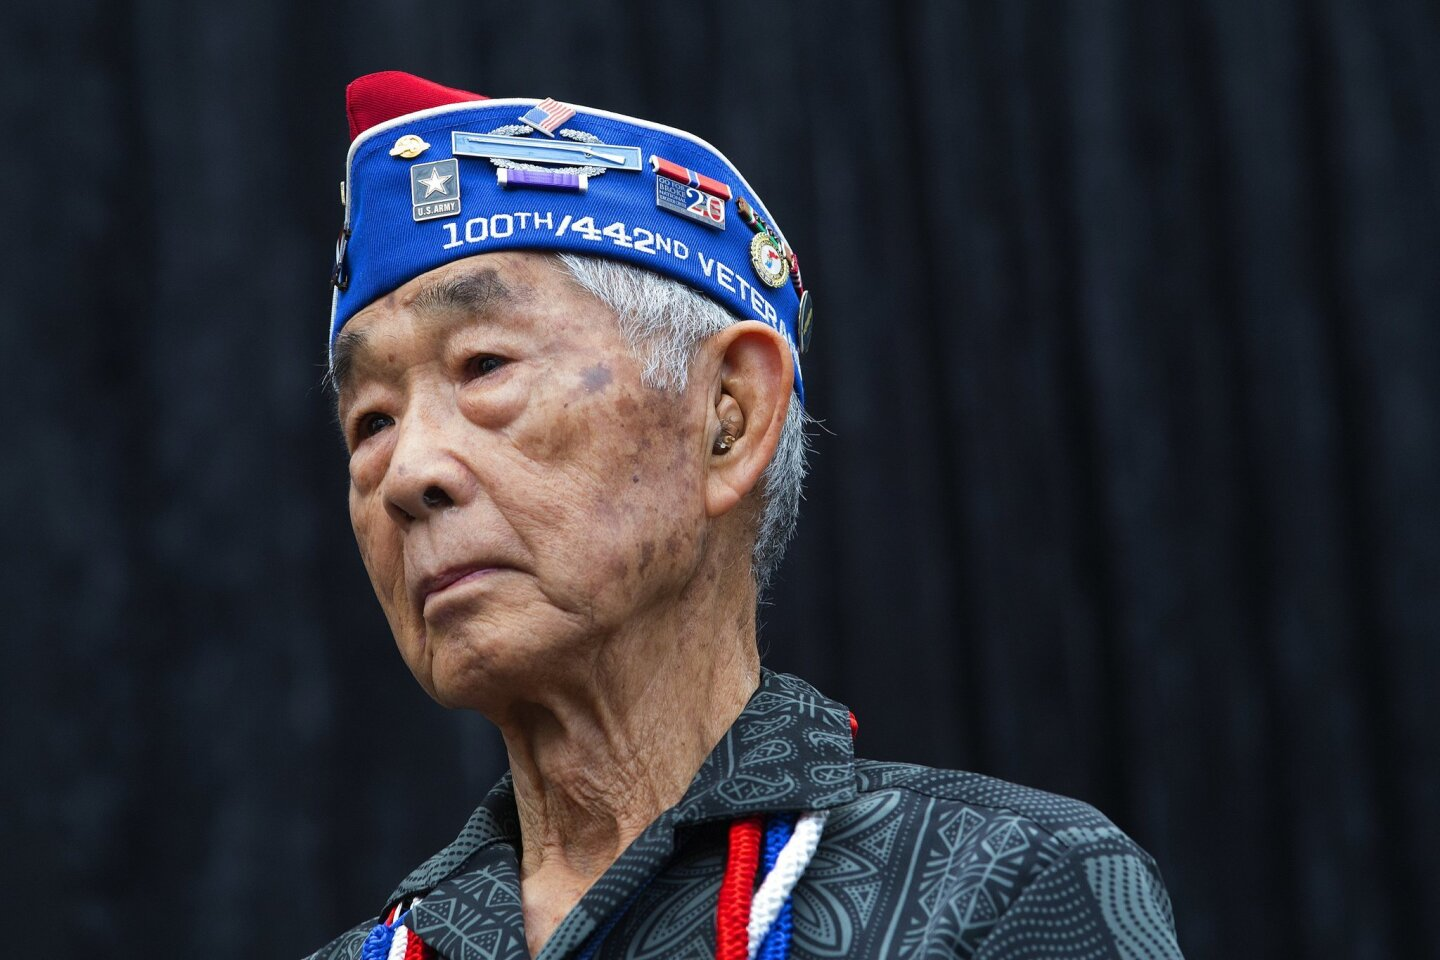 Former U.S. Army Staff Sgt. Frank M. Wada stood center stage as his bio was read out load to those in attendance to witness 14 World War II veterans receive the French Legion of Honor medal.